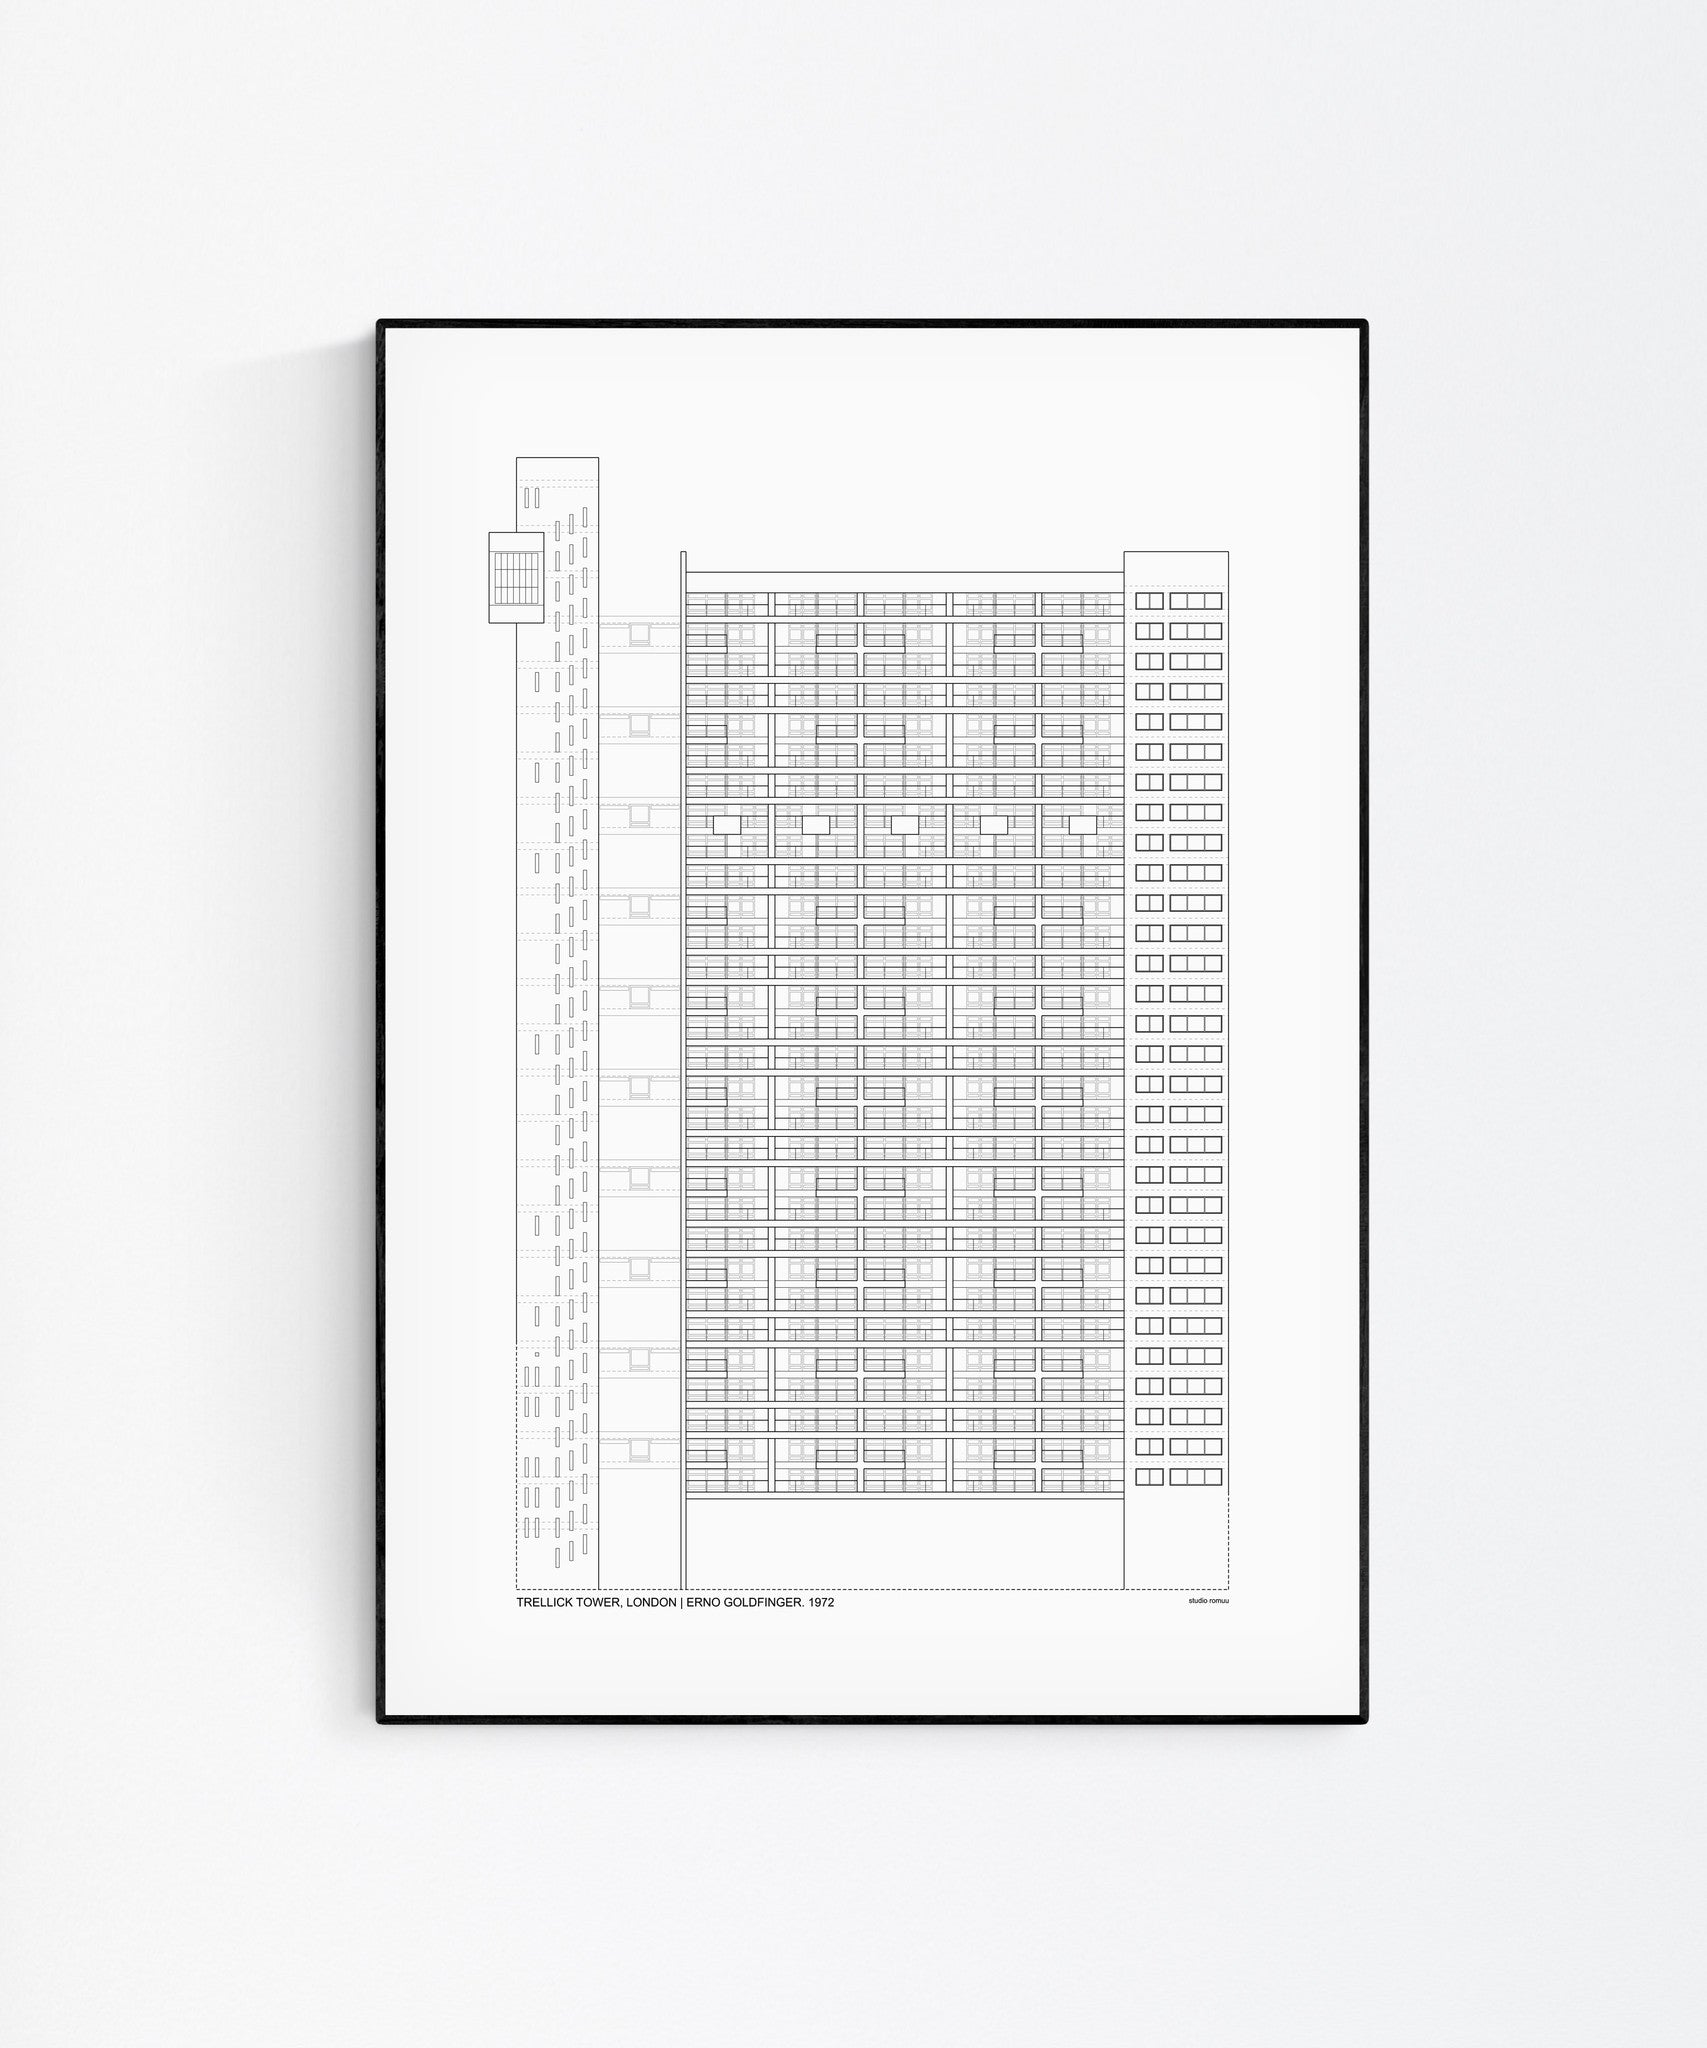 Trellick Tower Architecture Print by Studio Romuu - Wall Art